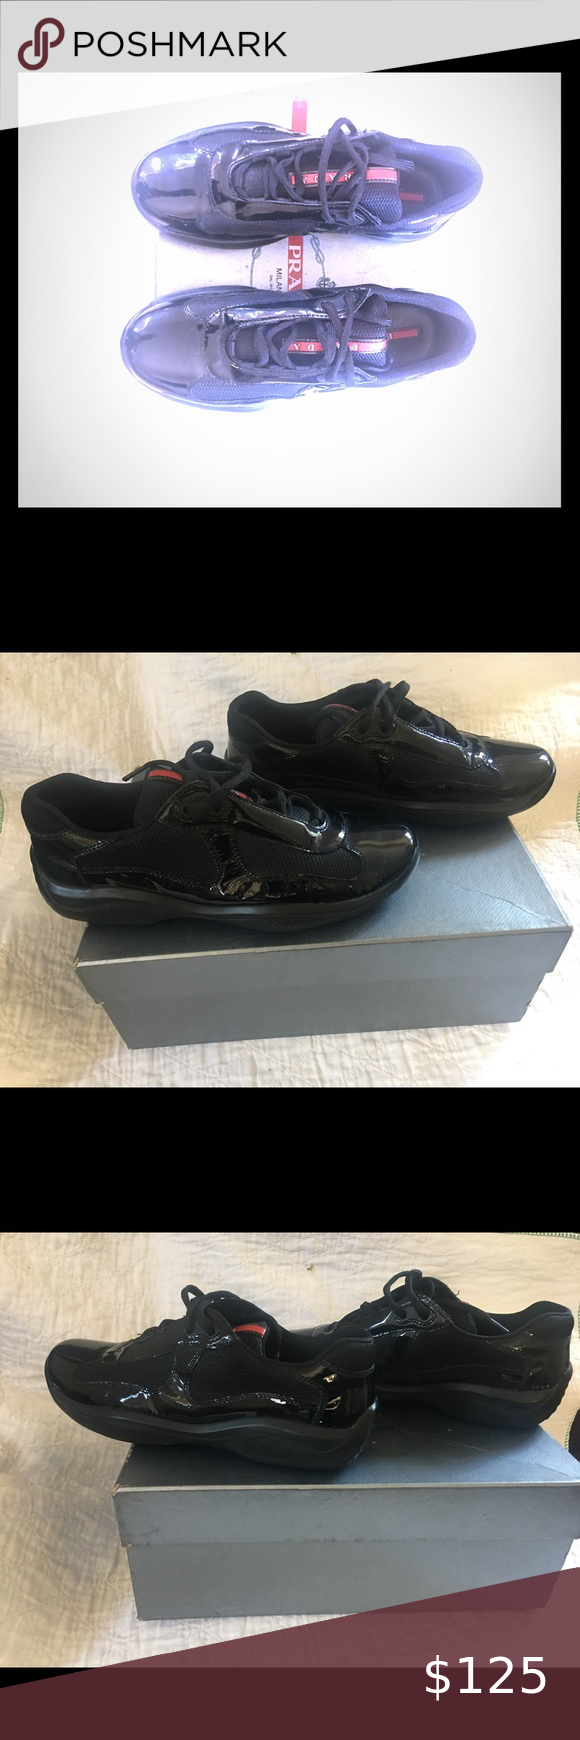 Prada shoes pre owned in good condition no box or bags